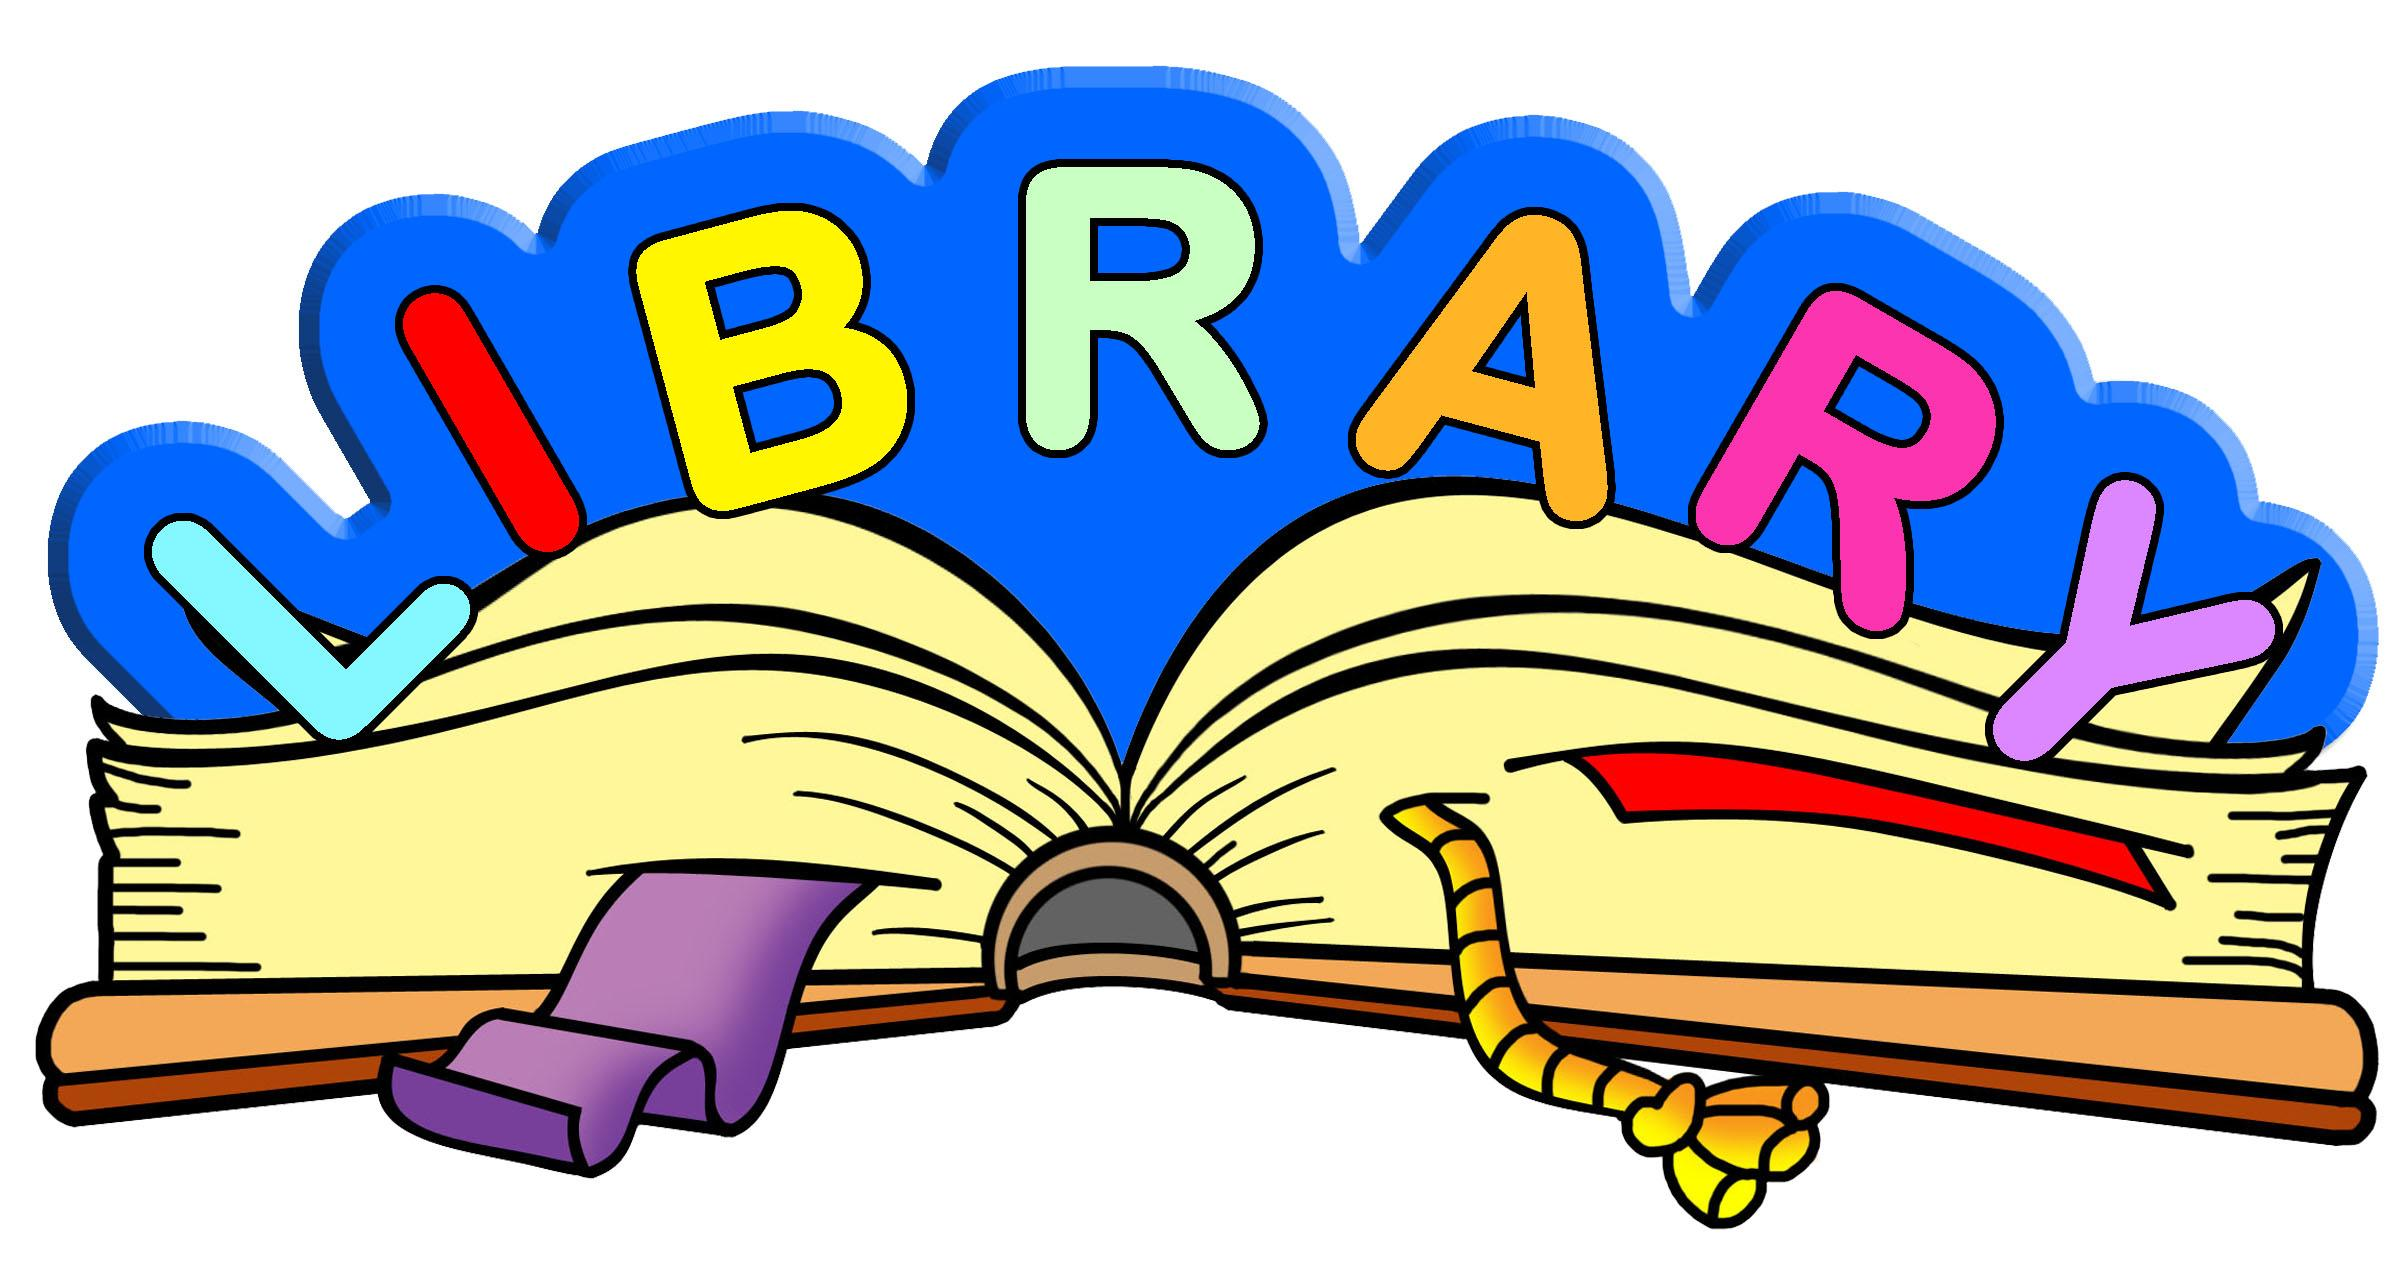 Library word image